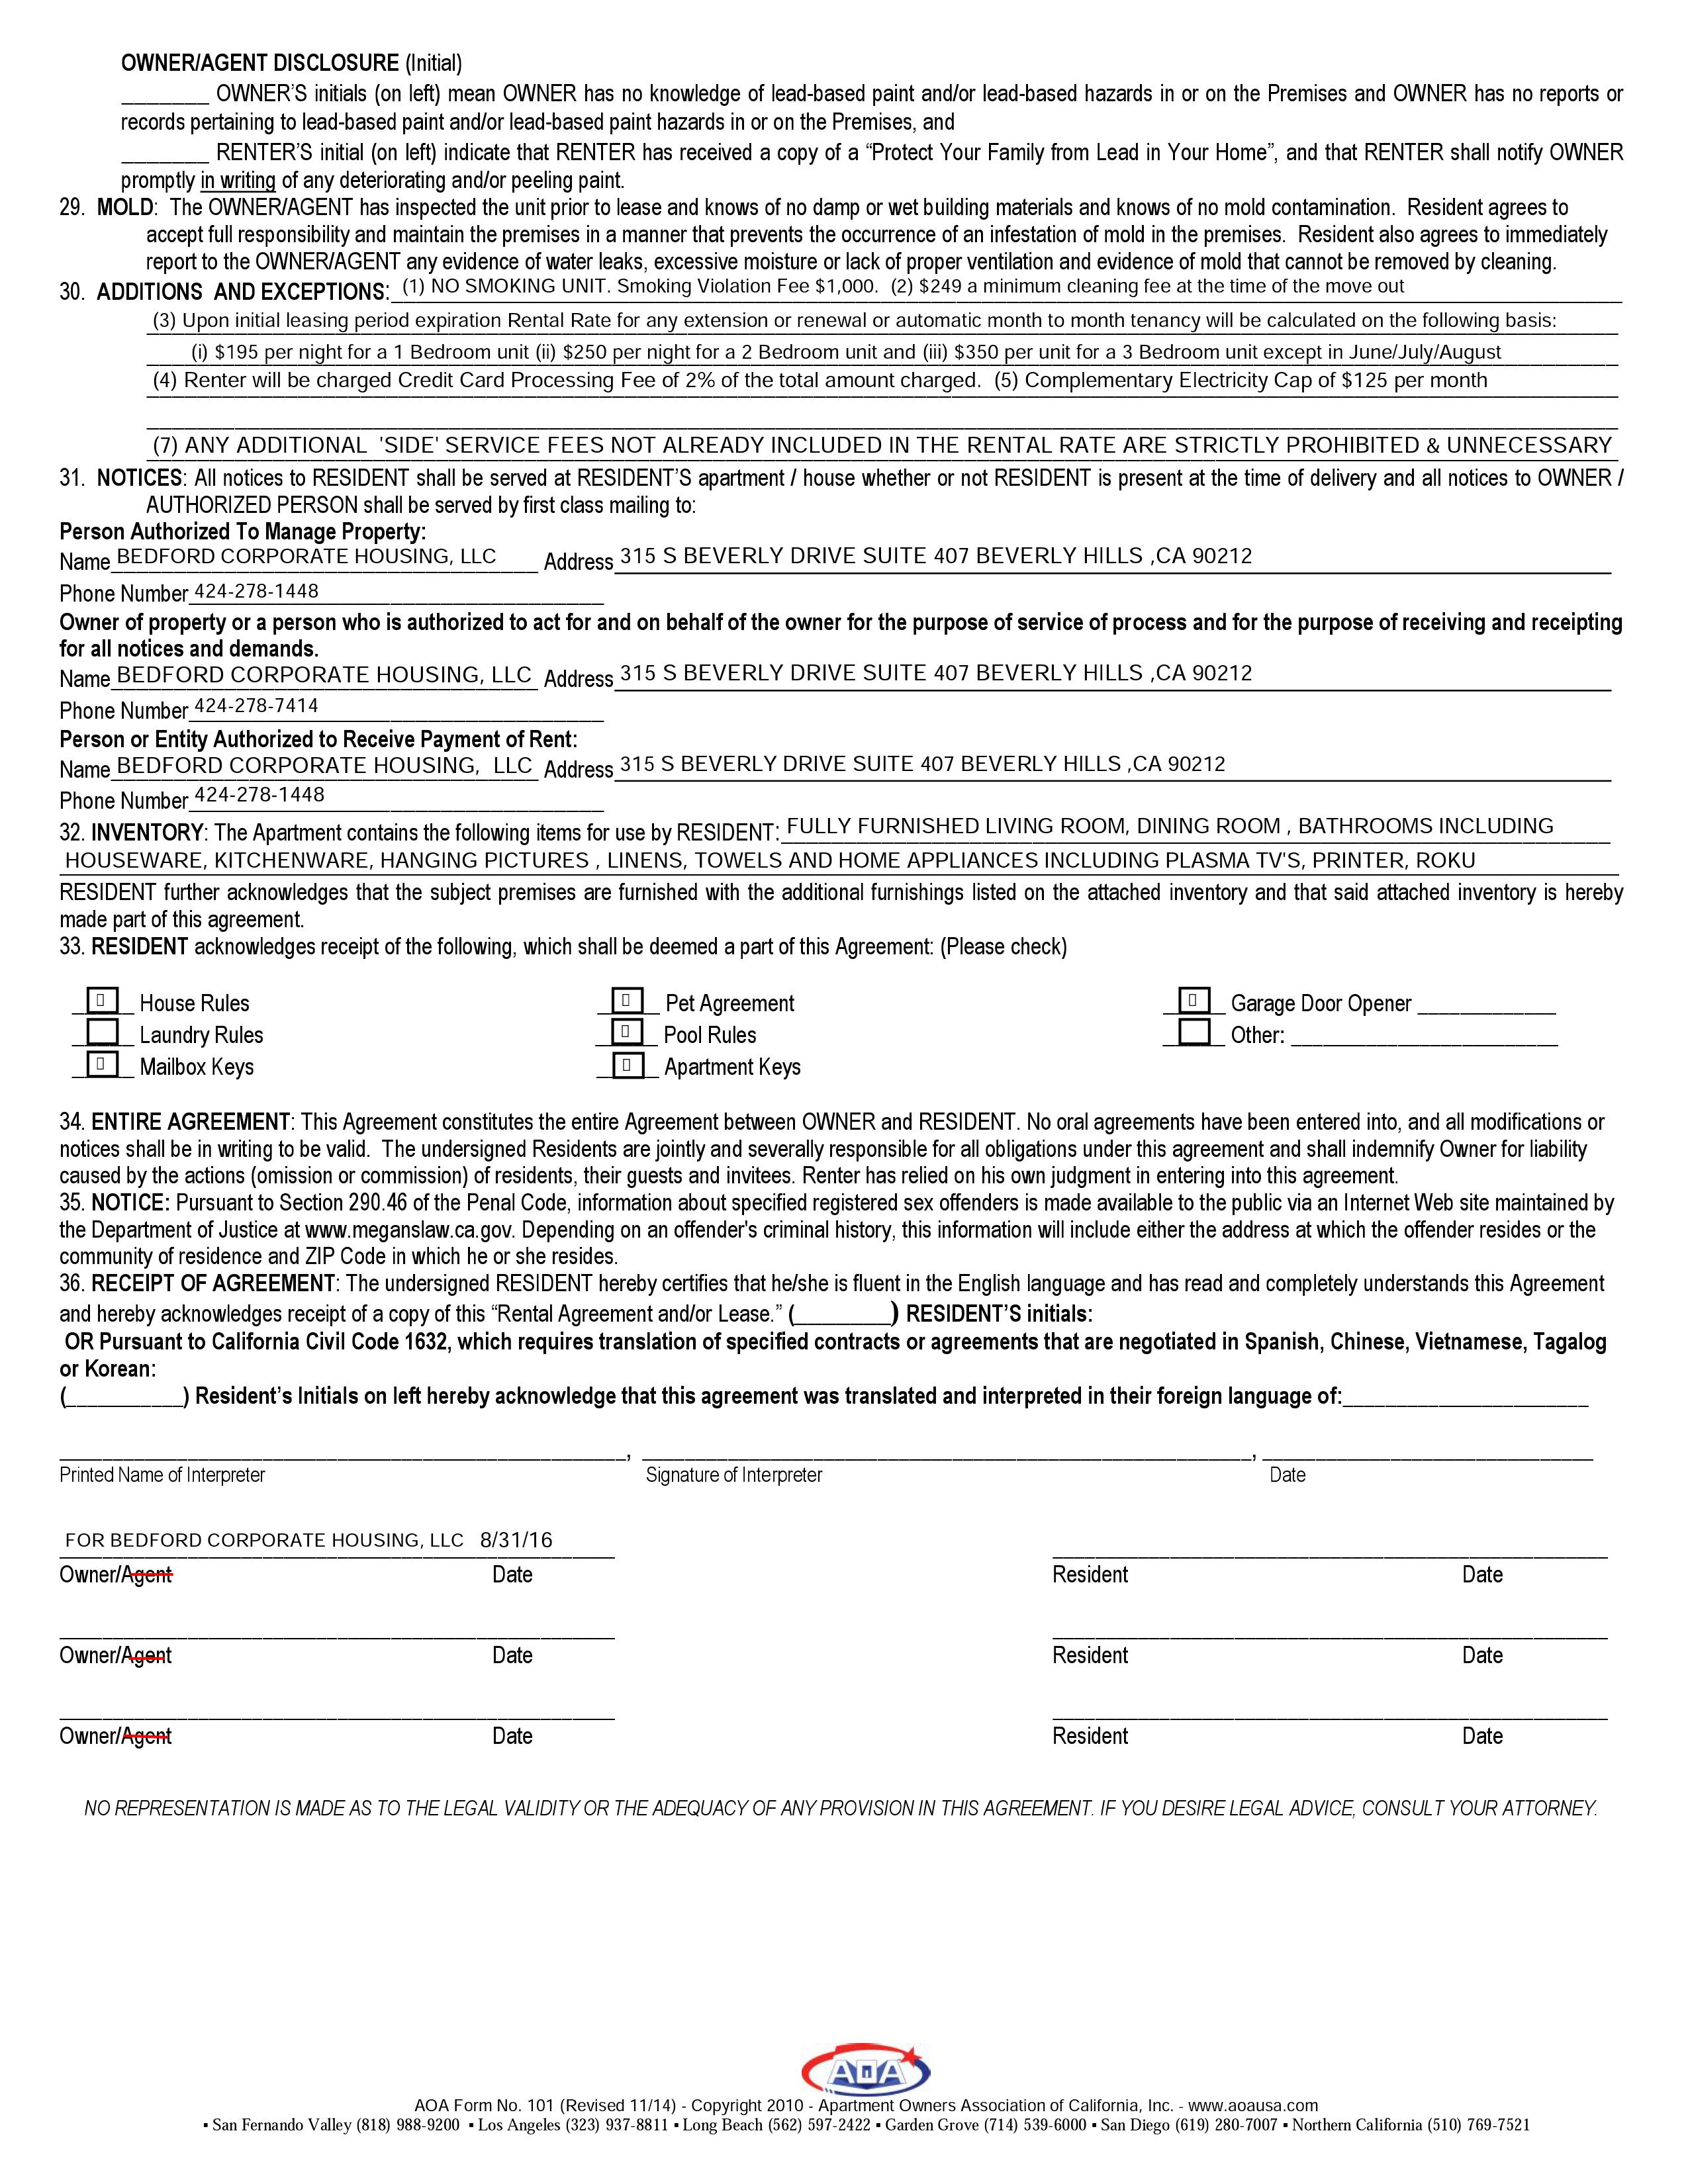 Sample Lease Agreements Documents Corporate Housing In Los Angeles